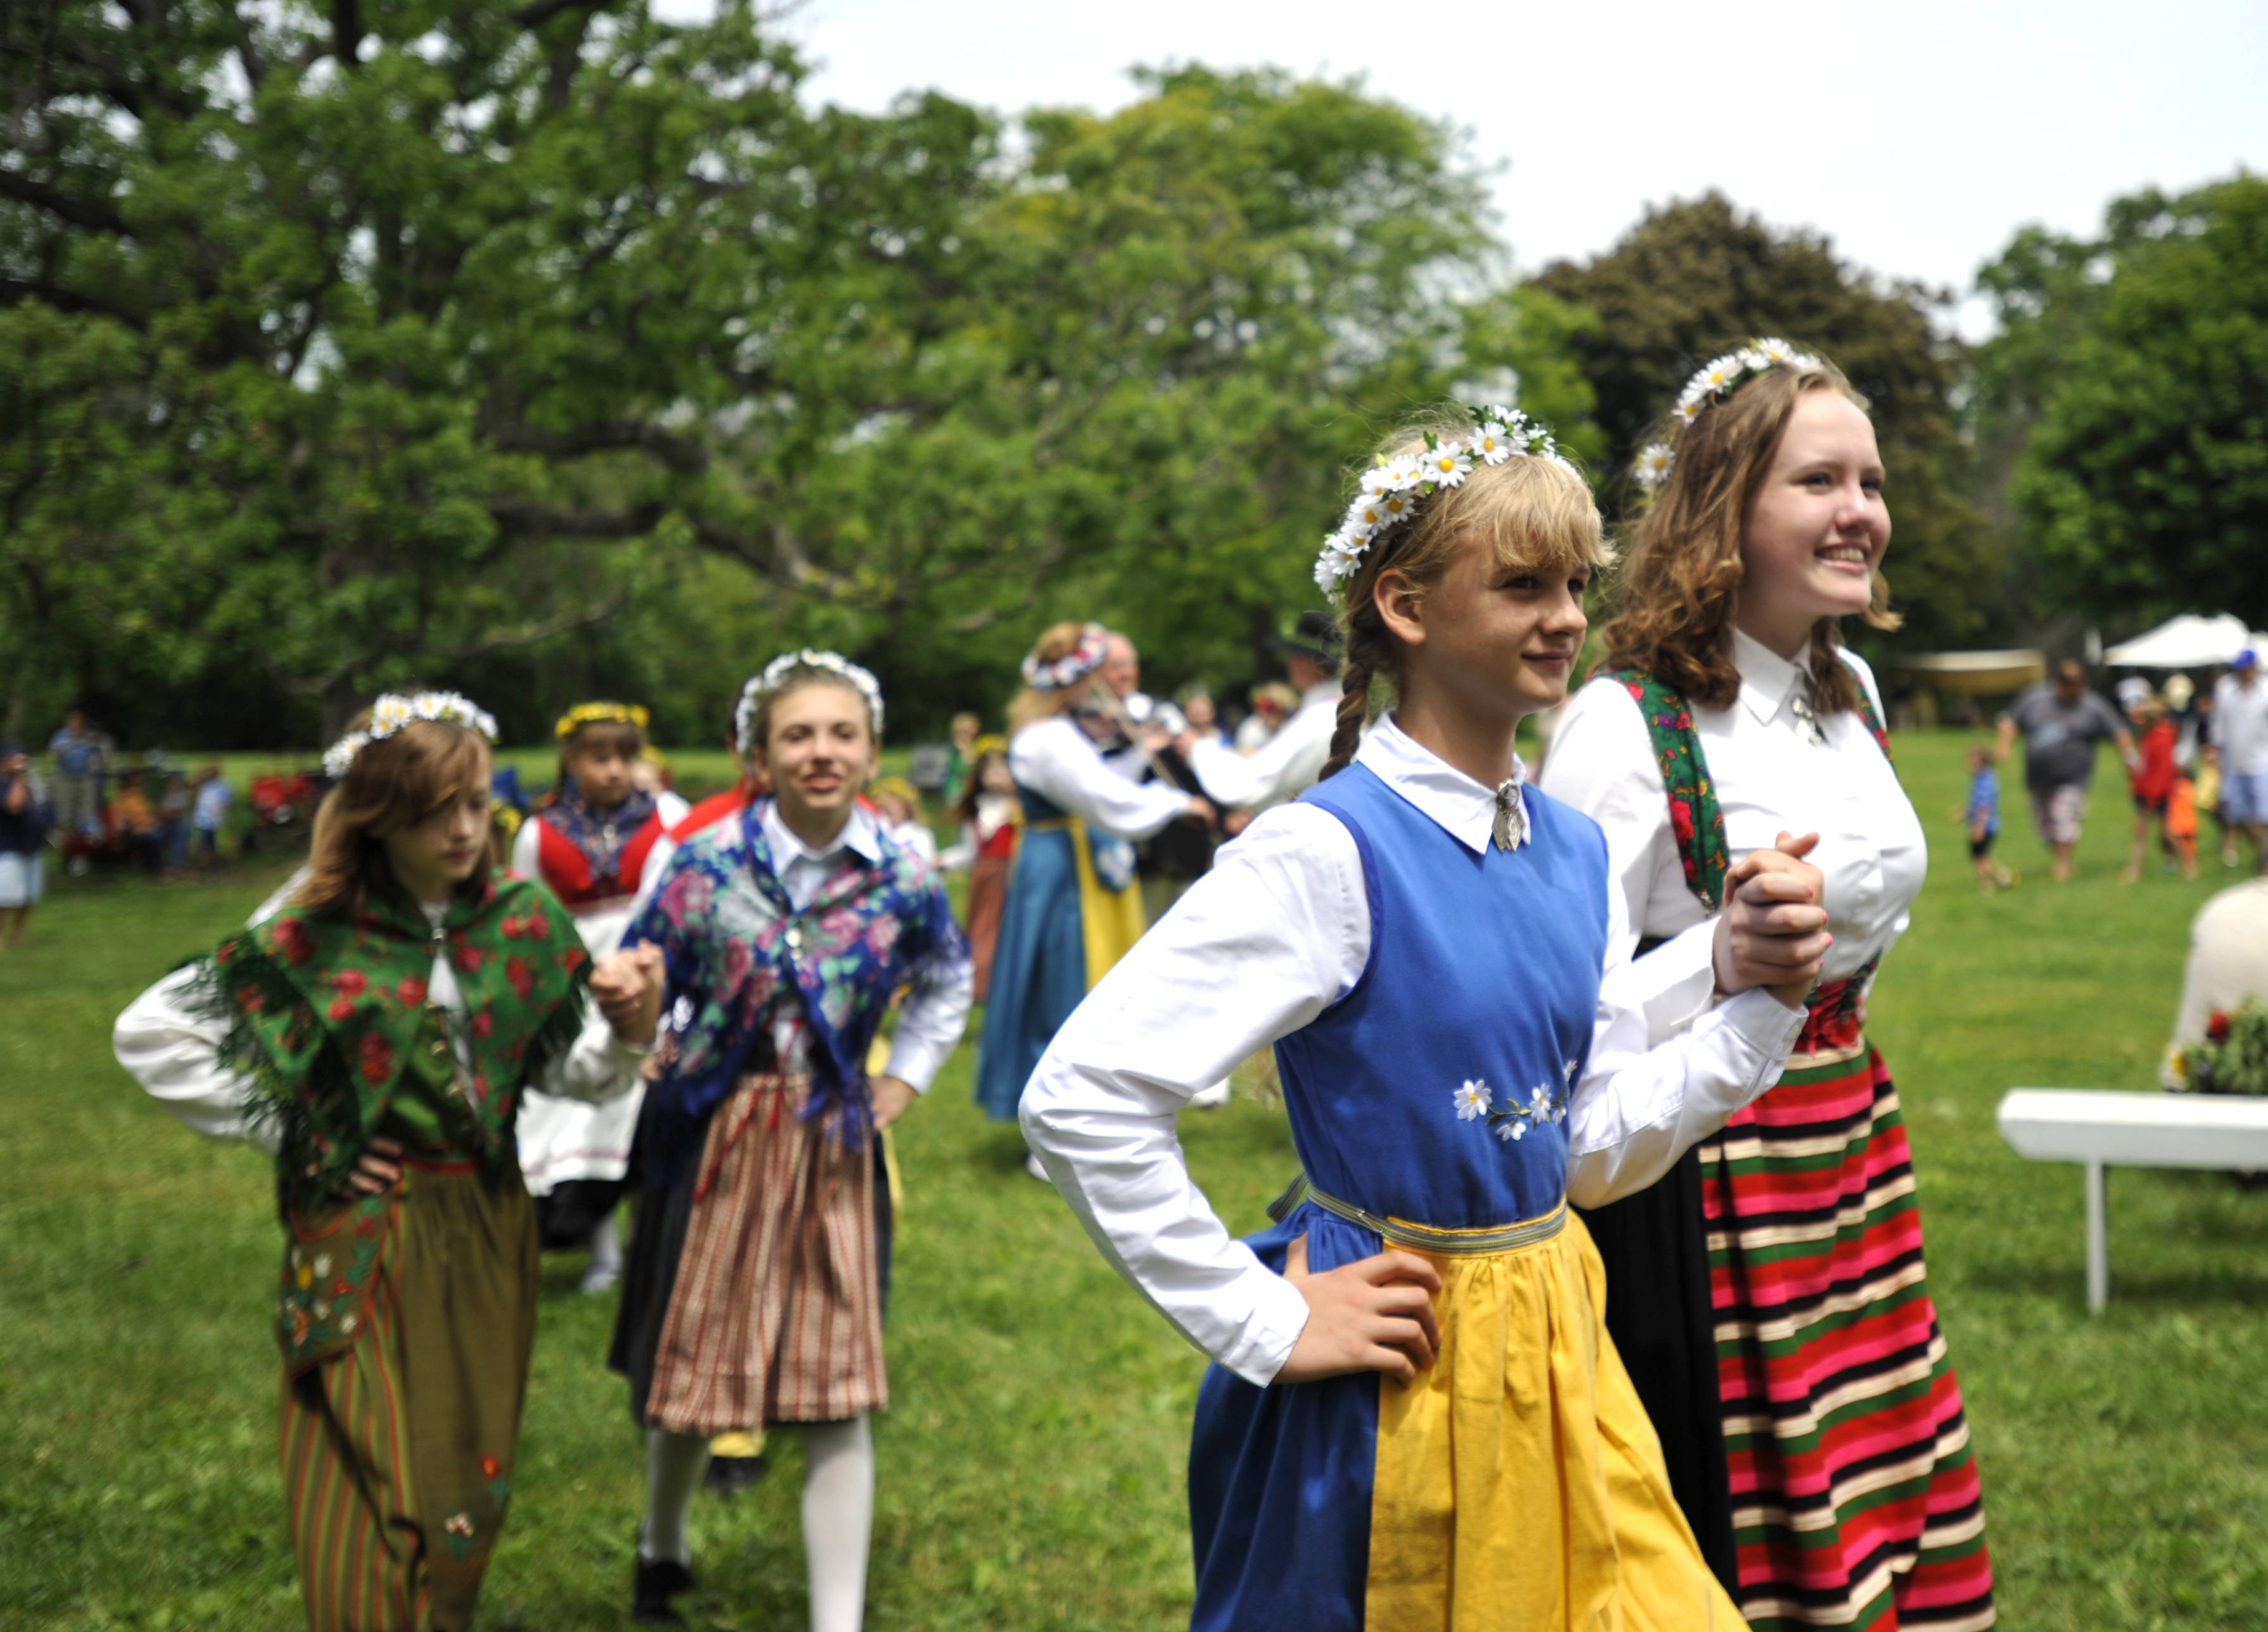 Louisa Olsen, 11, left, of Aurora and Lucy Smith, 14, of Geneva, walk in the procession Sunday before the Maypole dancing at the 104th annual Swedish Day Midsommar Festival in Geneva.